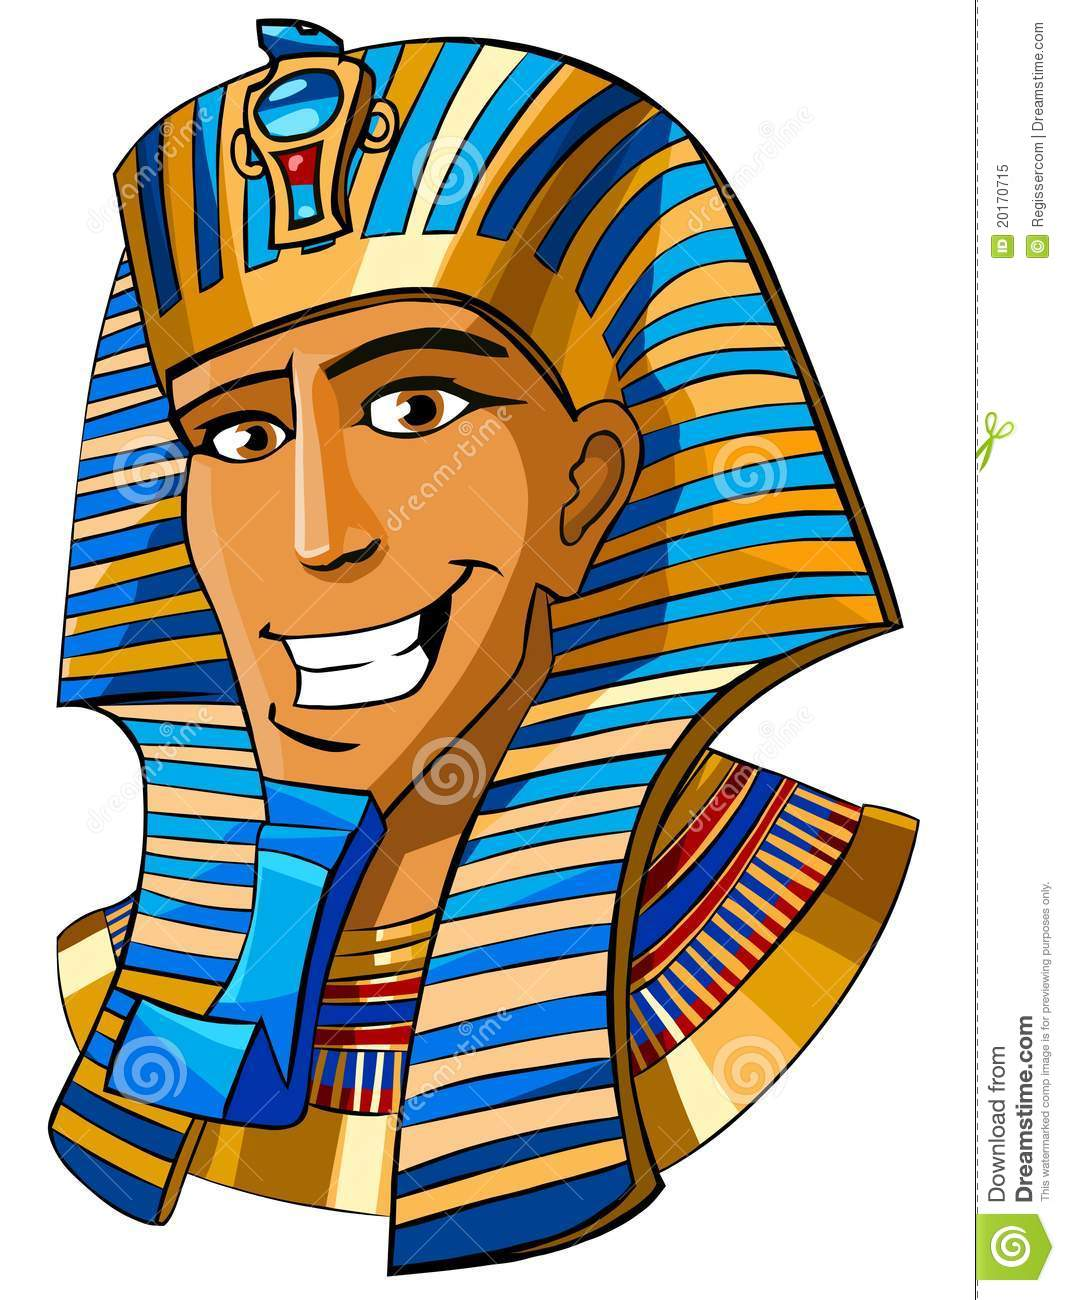 Cartoon Smiling Face Of Egyptian Pharaoh On A White Background